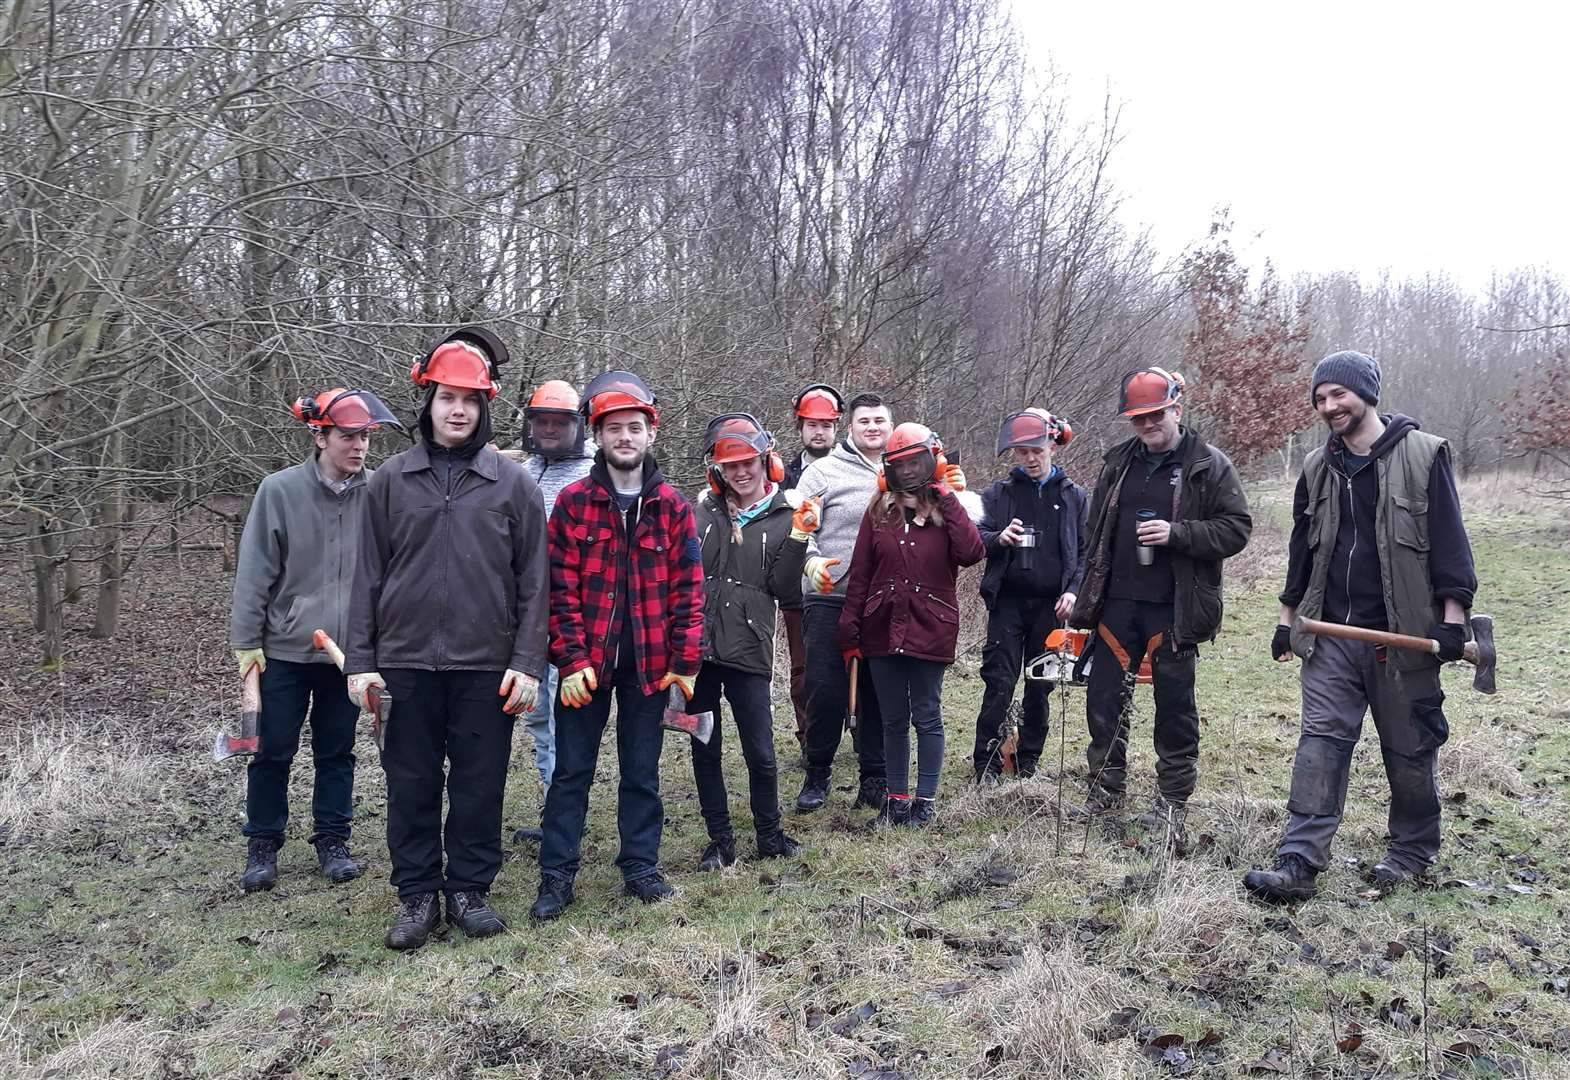 Grantham job seekers take part in training course as part of heritage project